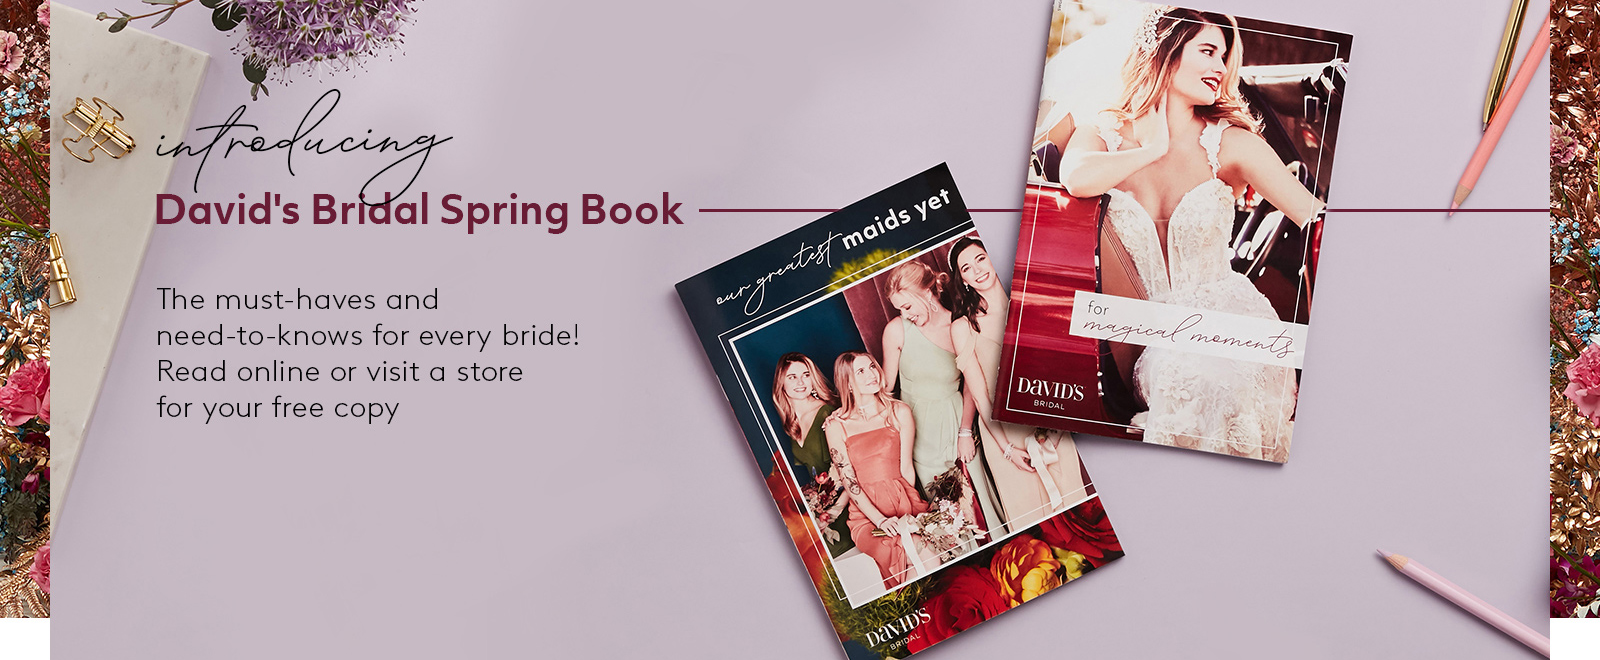 Introducing Bridal Spring Book